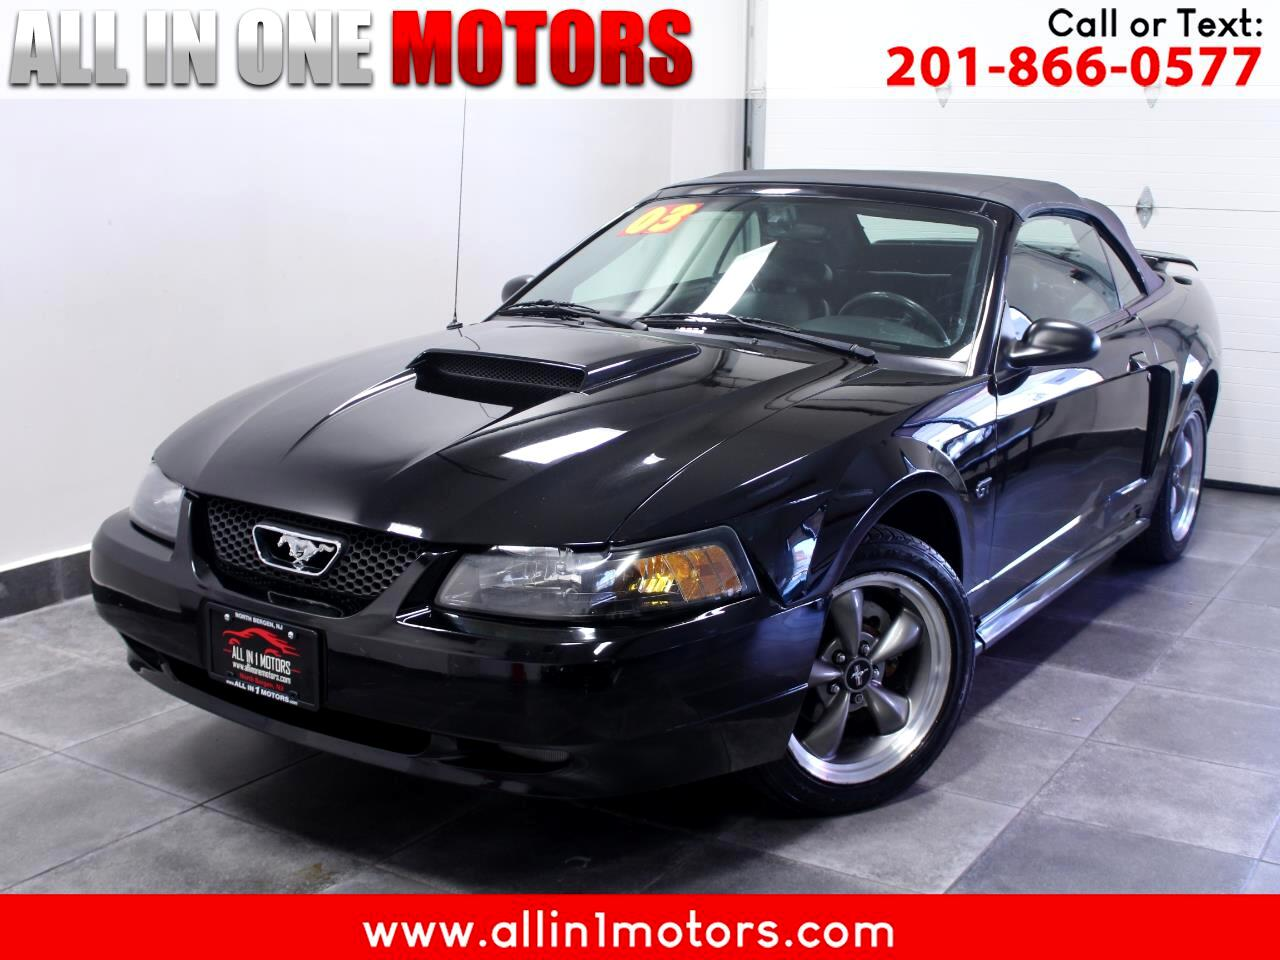 Ford Mustang 2dr Conv GT Deluxe 2003